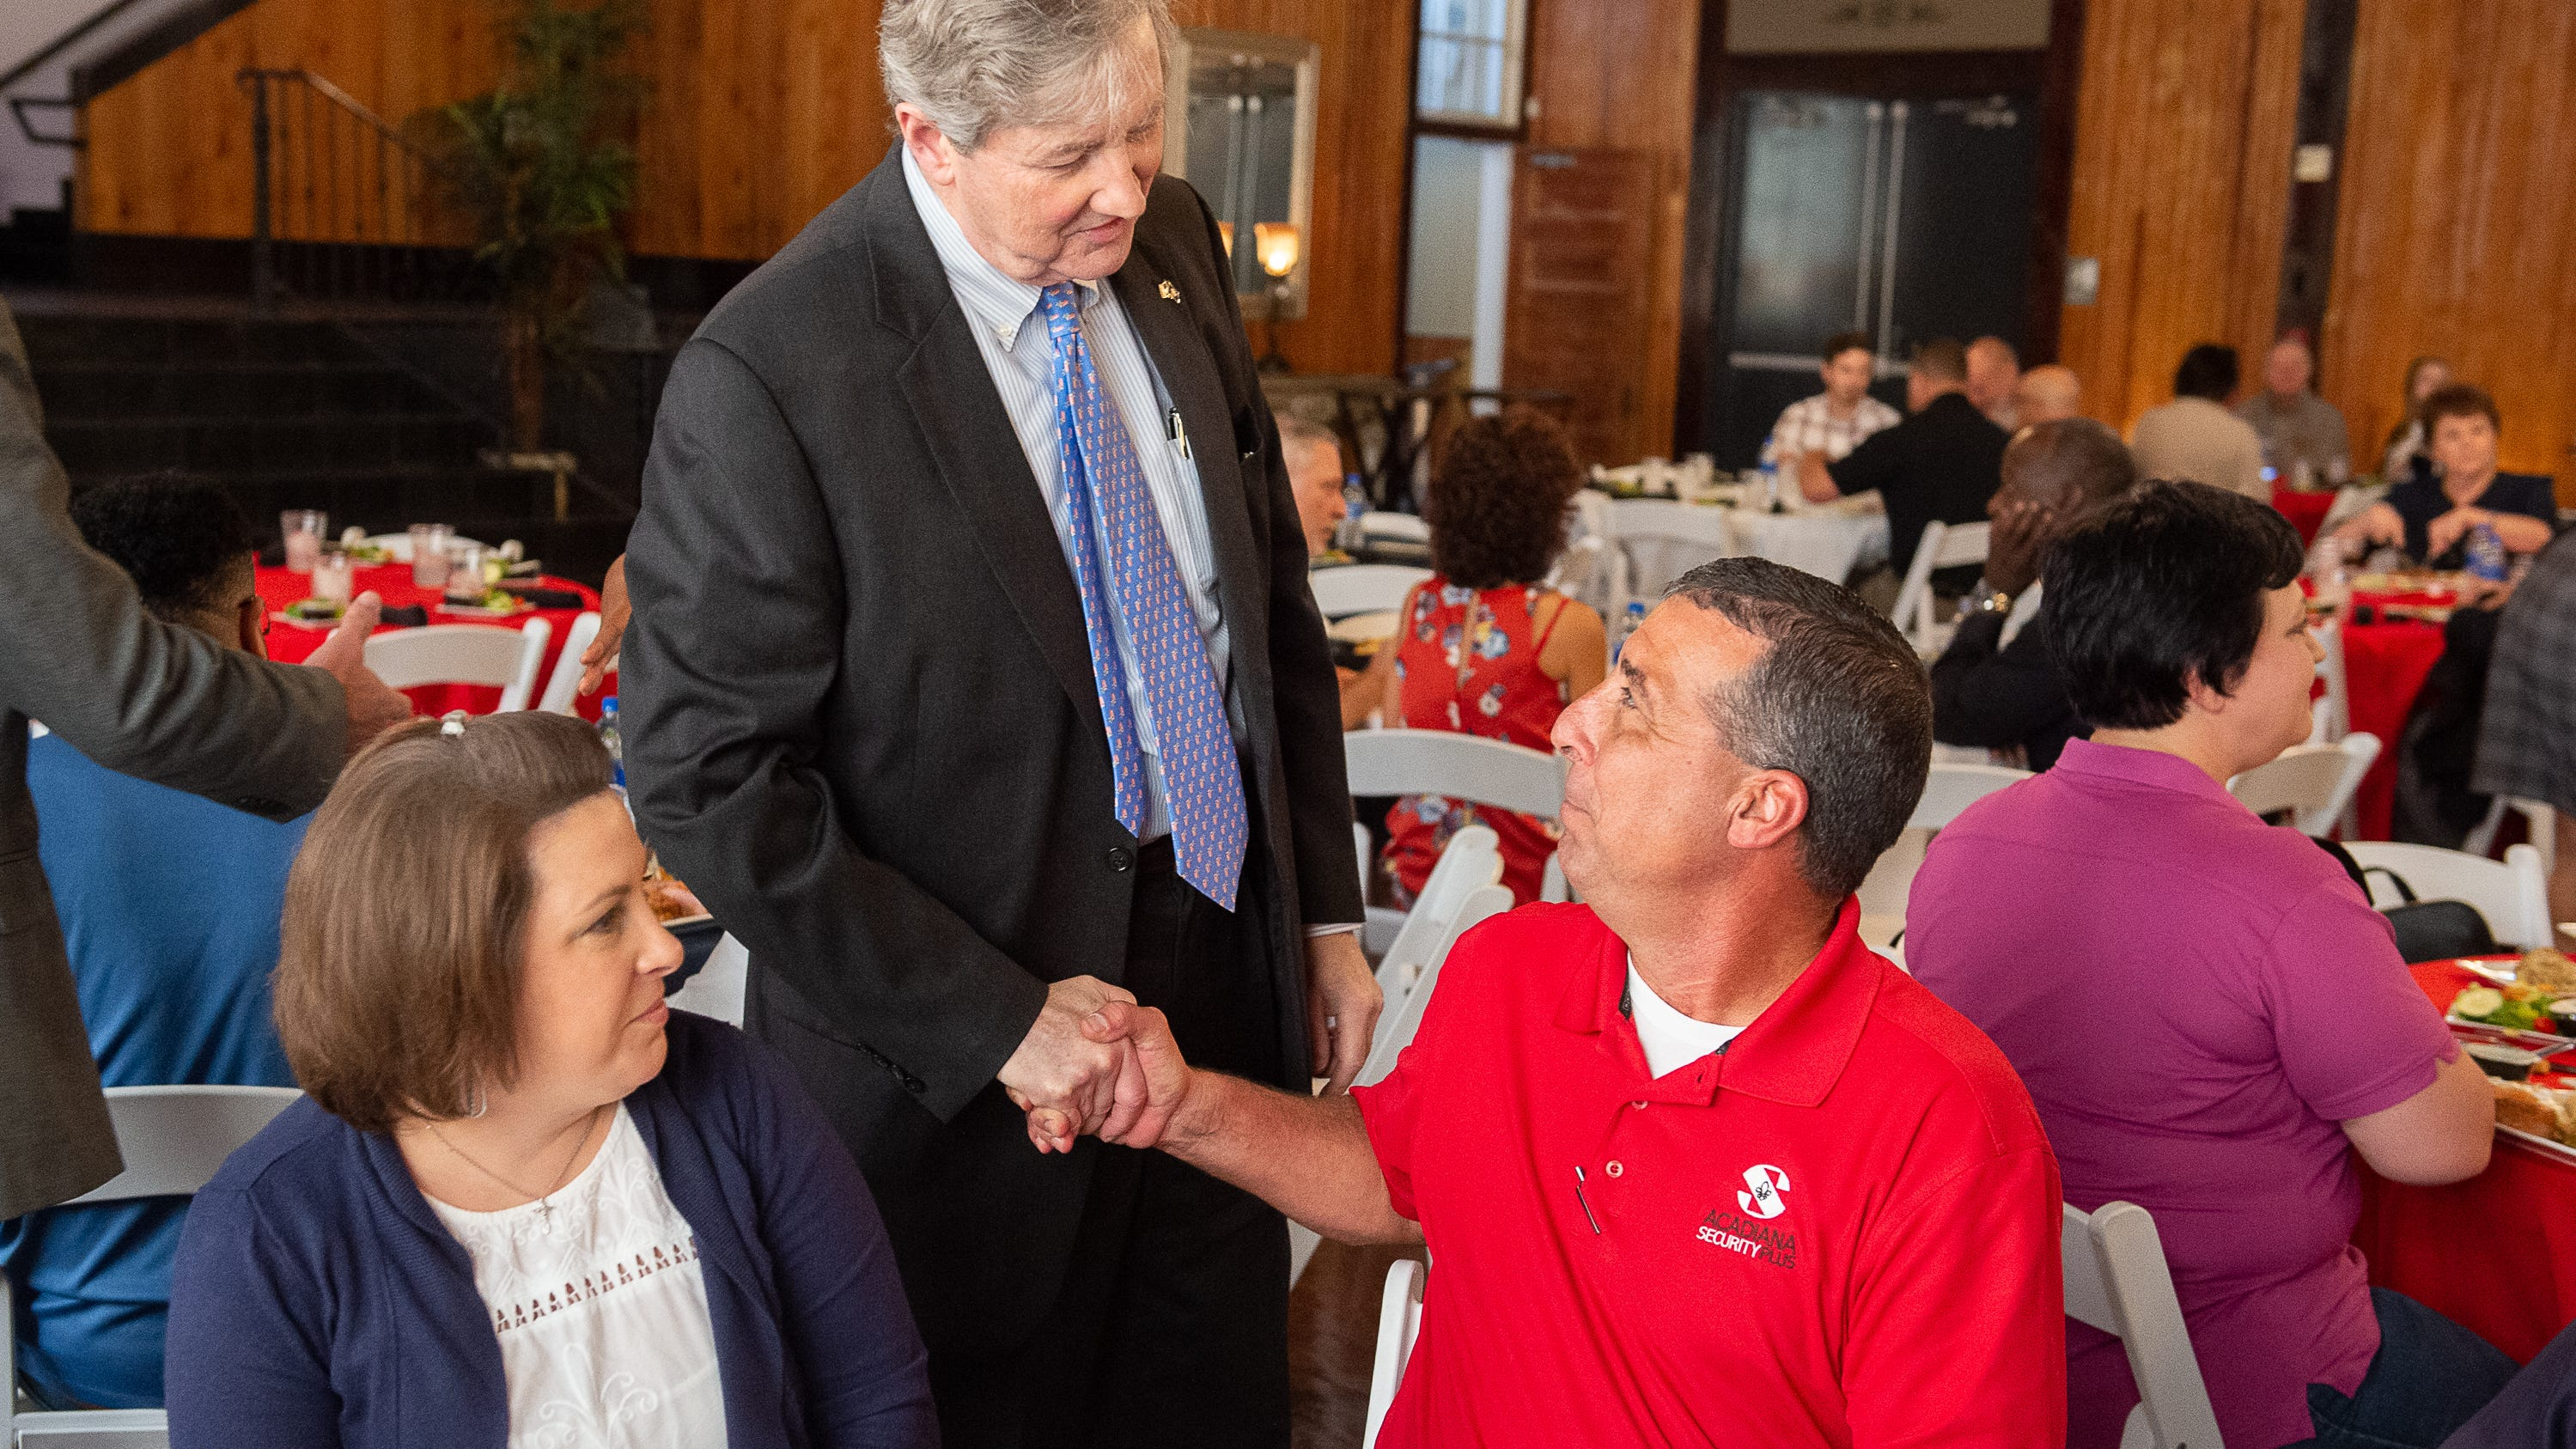 Sen. Kennedy talks immigration, Medicaid, Alabama football at event in Broussard